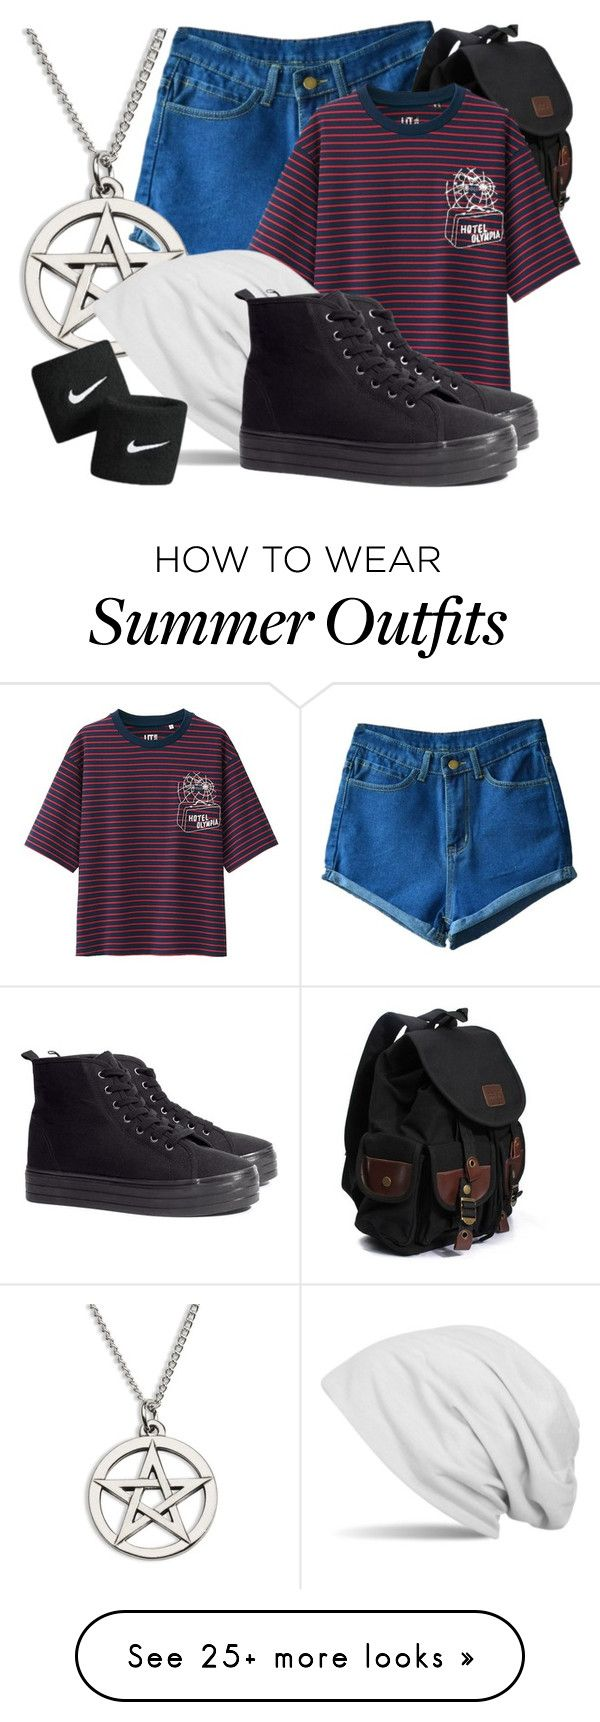 """""""Roxy's Outfit"""" by lifeofwild on Polyvore featuring Uniqlo and H&M"""